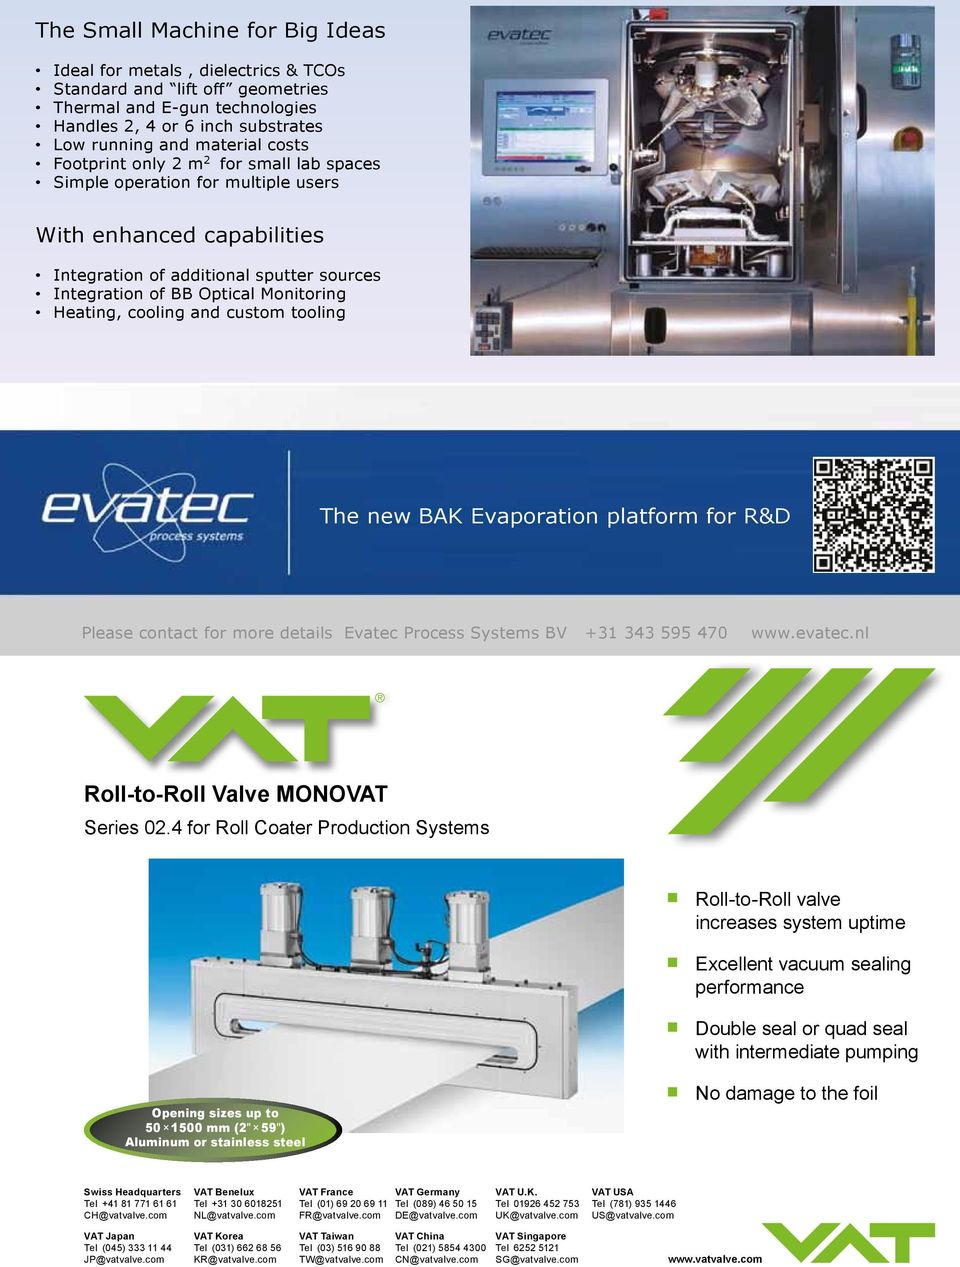 cooling and custom tooling The new BAK Evaporation platform for R&D Please contact for more details Evatec Process Systems BV +31 343 595 470 www.evatec.nl Roll-to-Roll Valve MONOVAT Series 02.